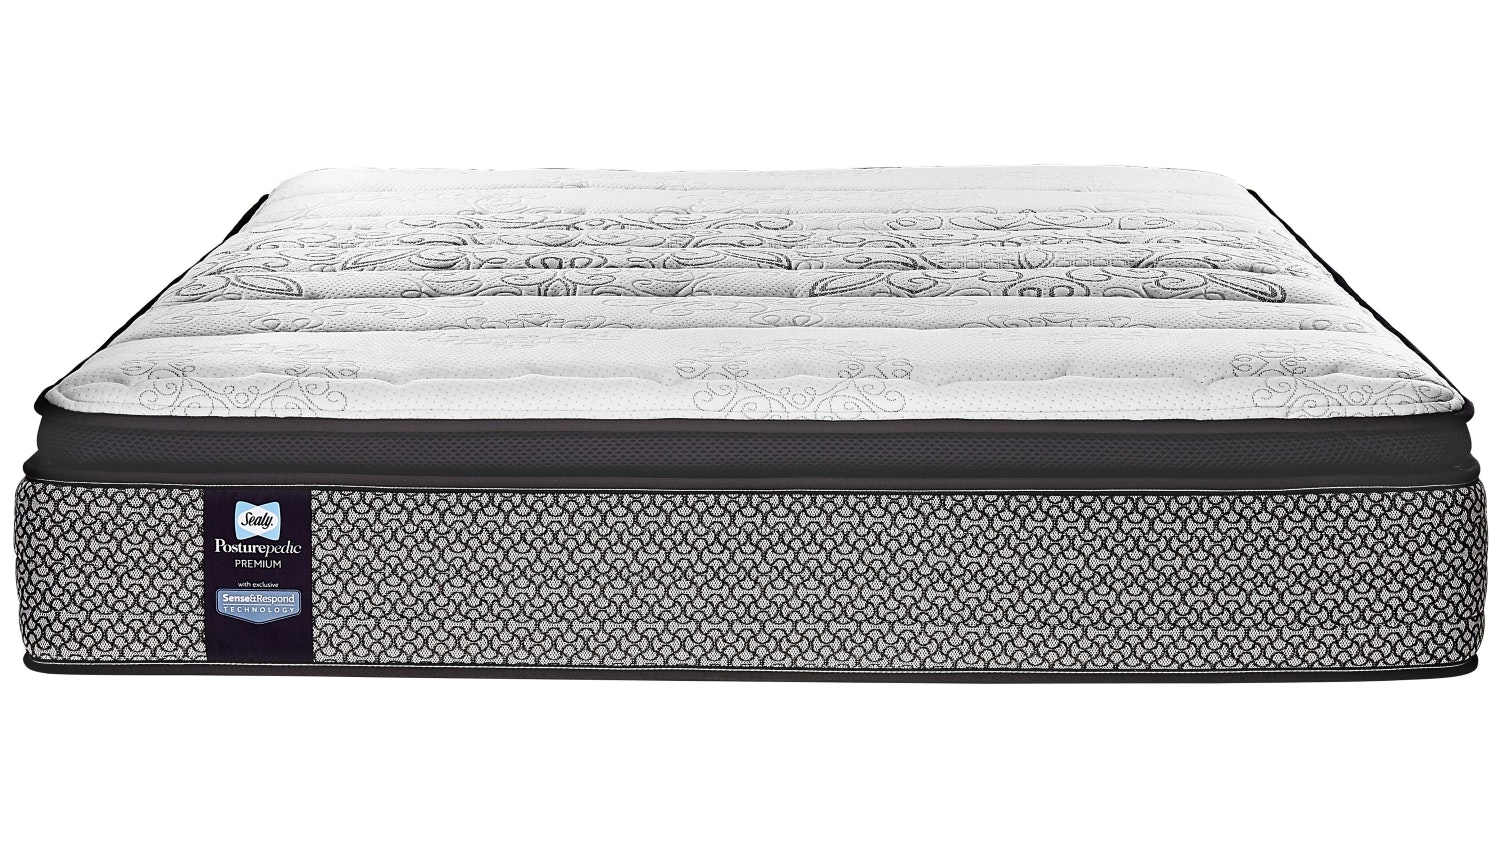 Sealy Posturepedic Premium Amada Flex Plush Adjustable Mattress